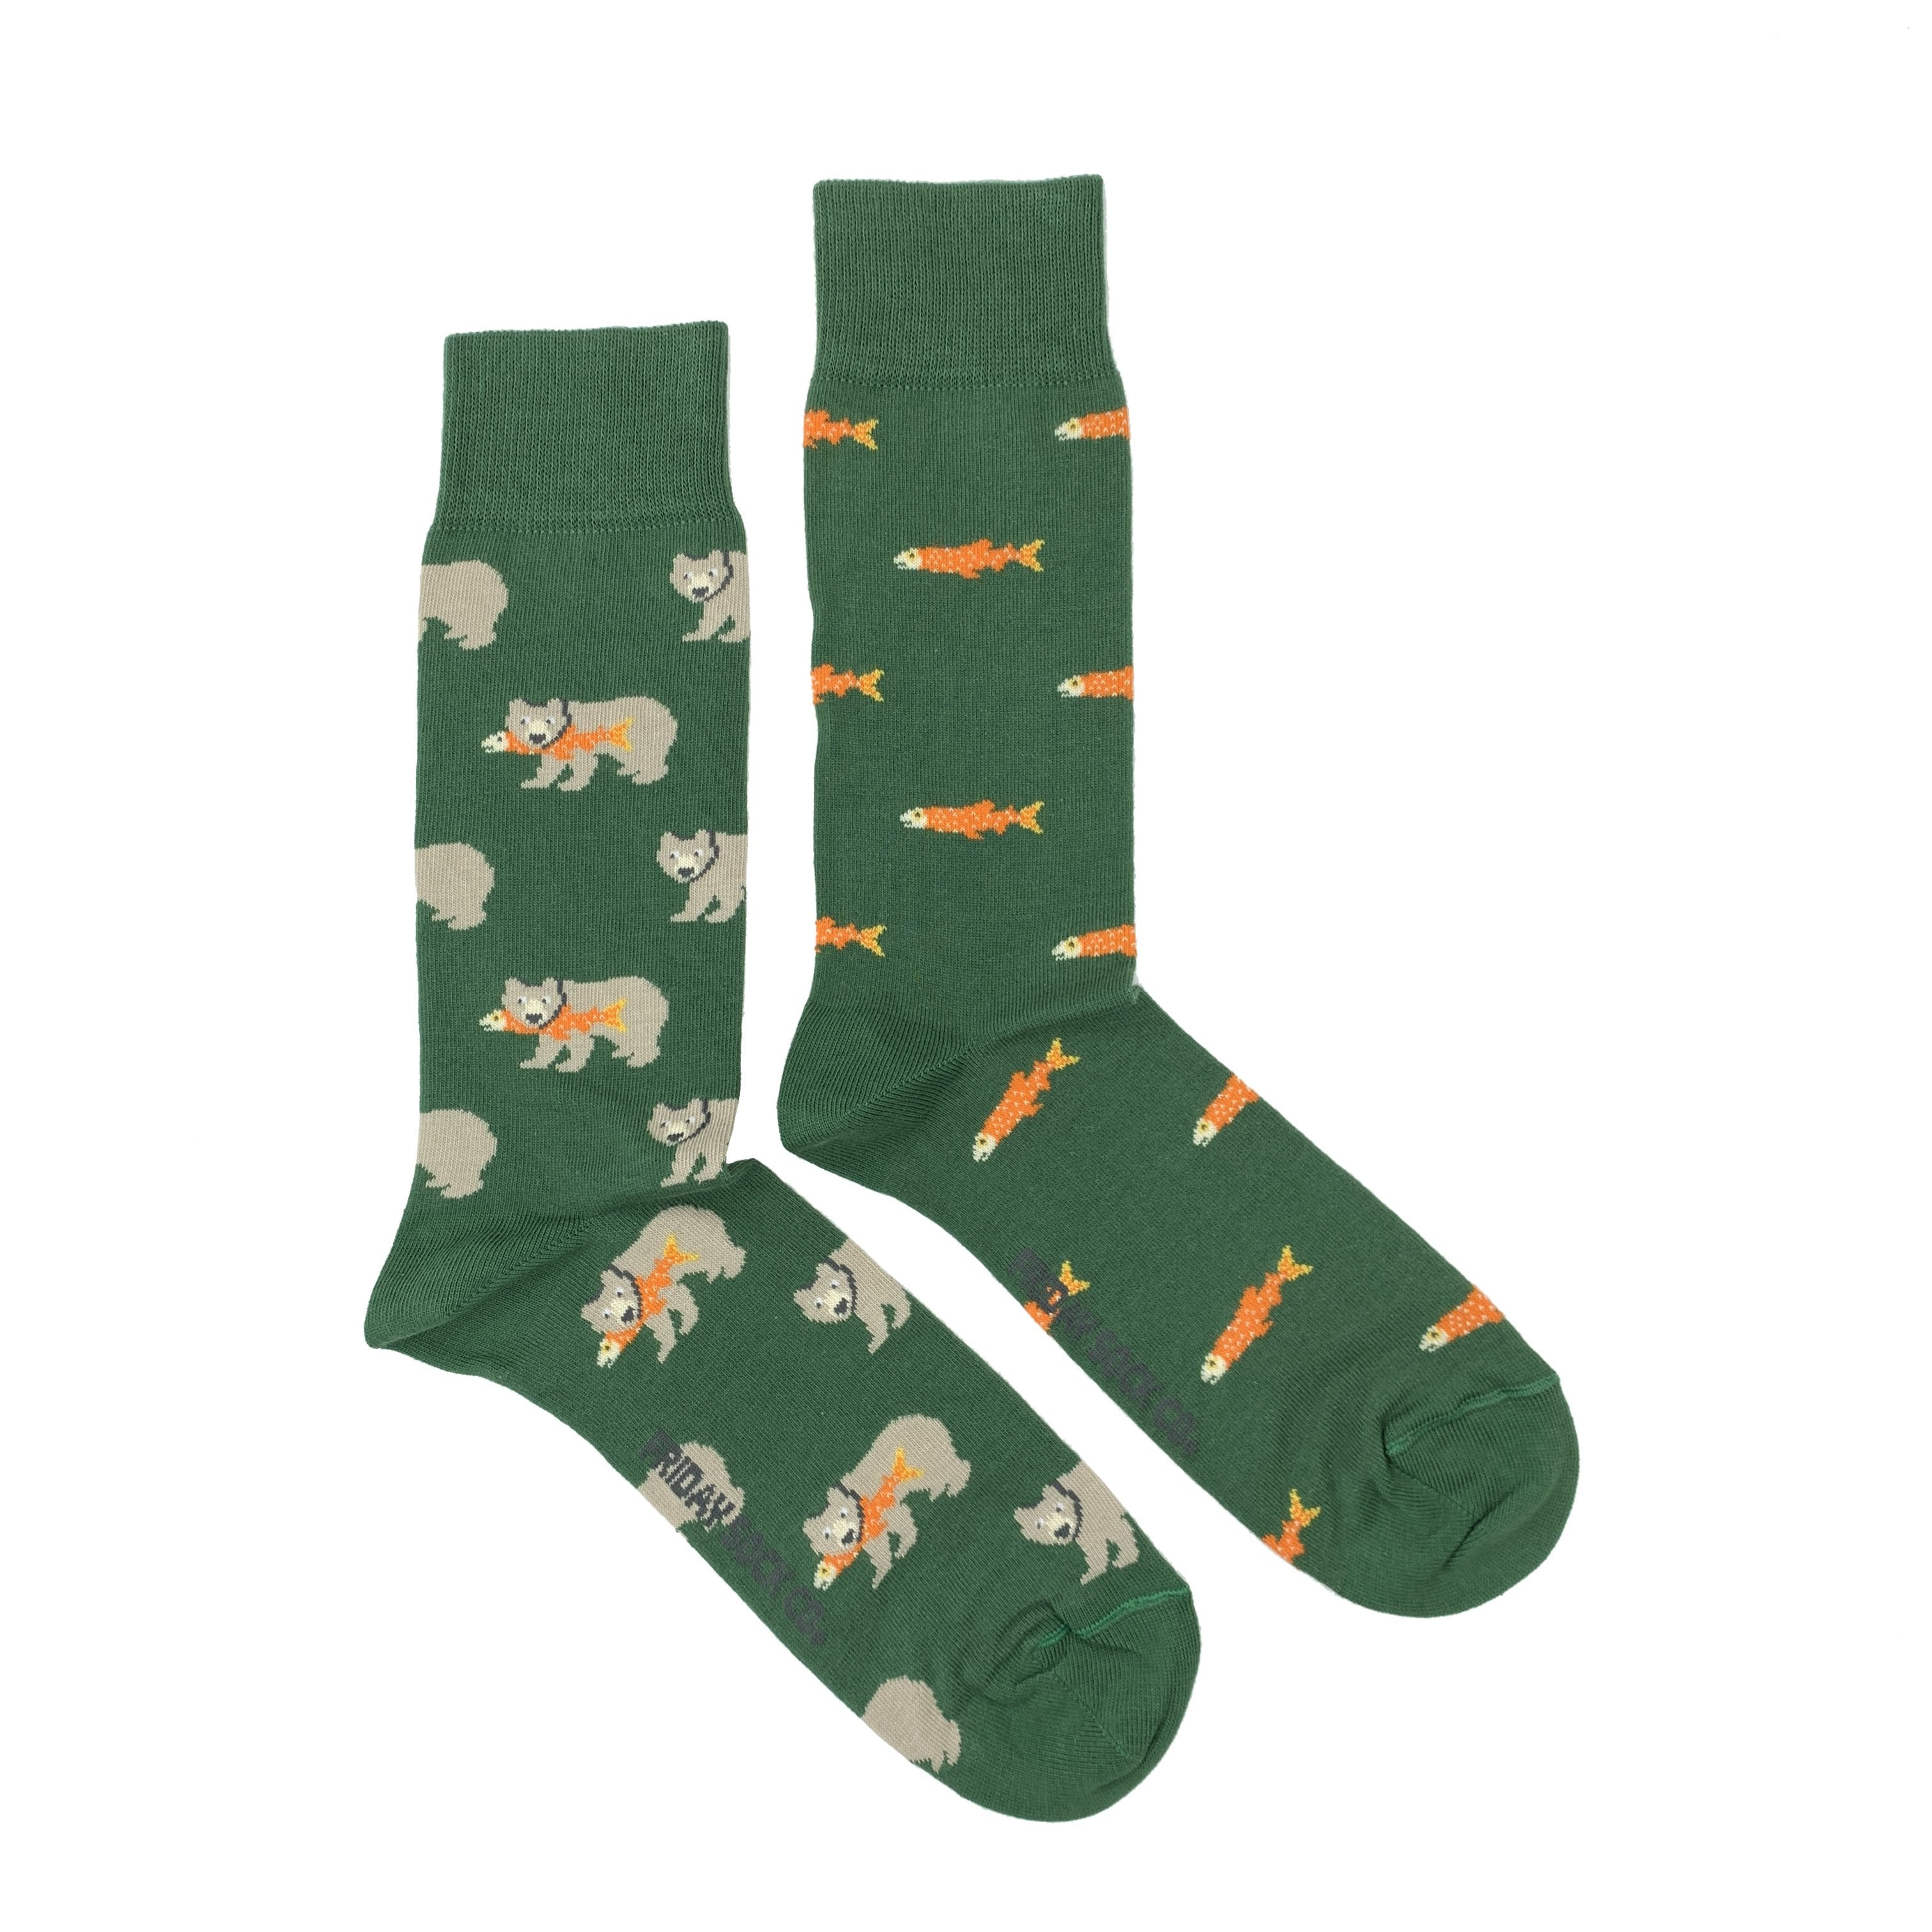 Friday Sock Co. - Men's Bear & Salmon